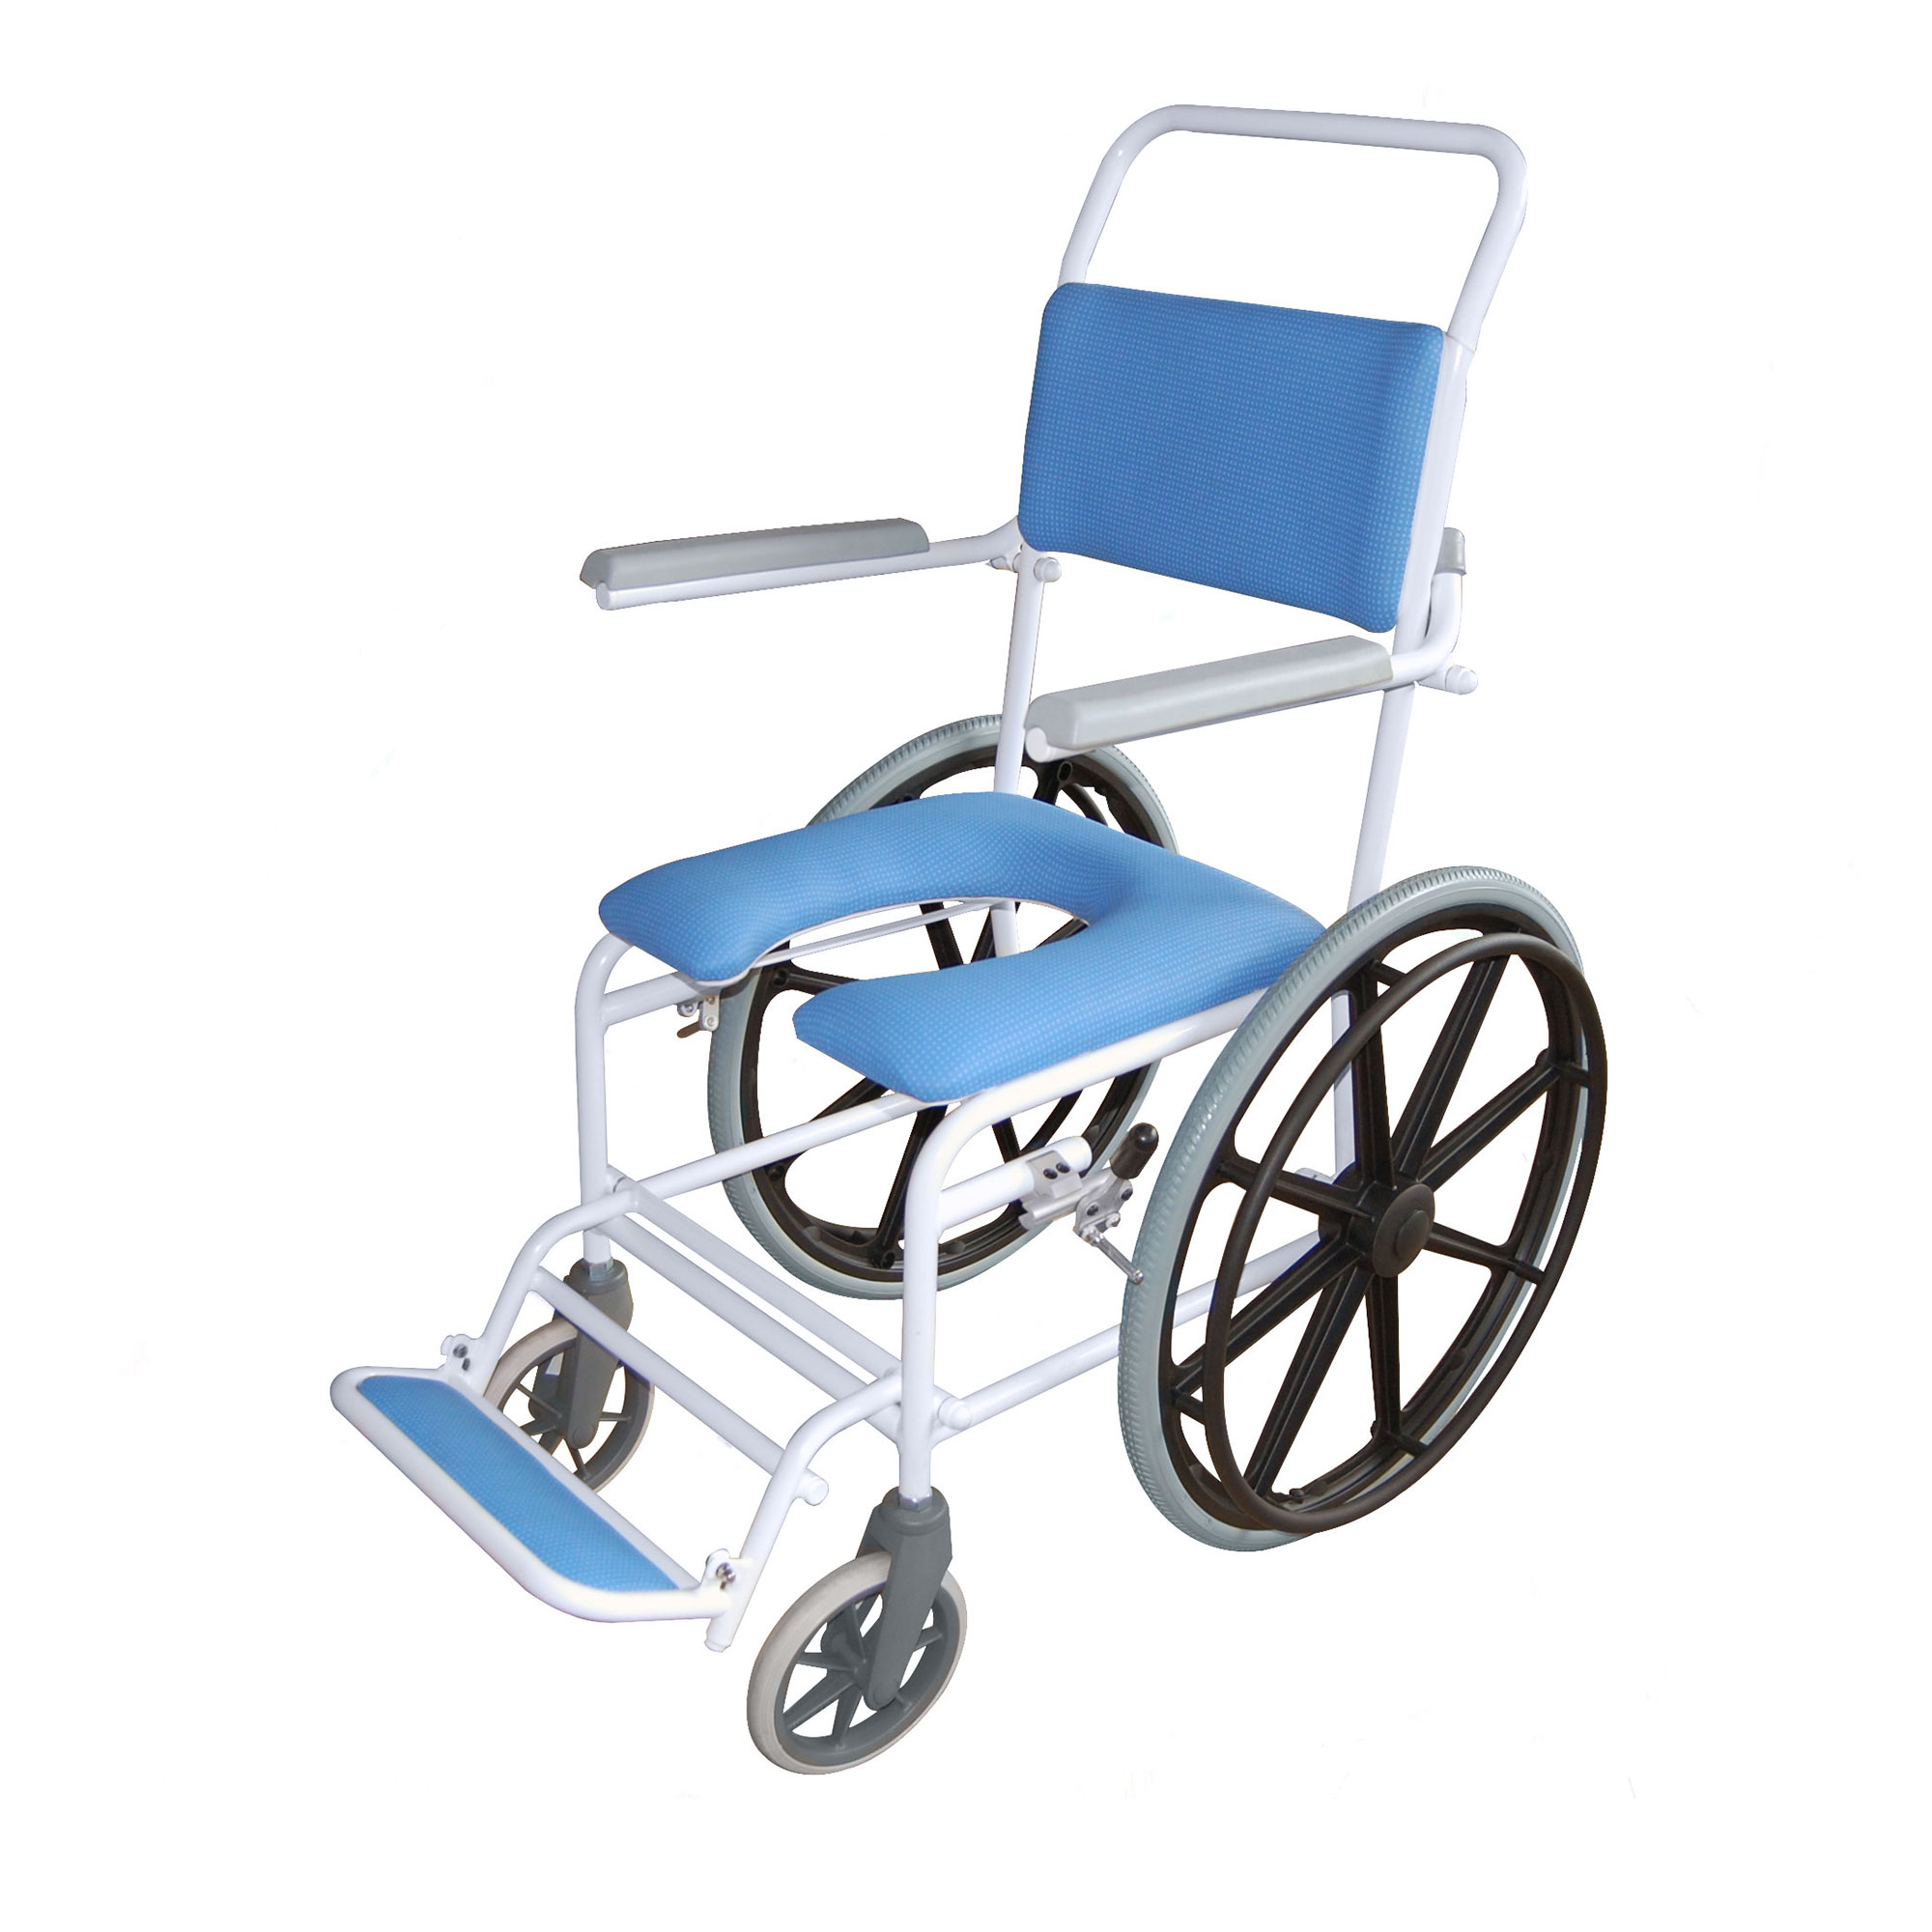 4145g Windsor Gap Self Propelled Shower Chair Roma Medical